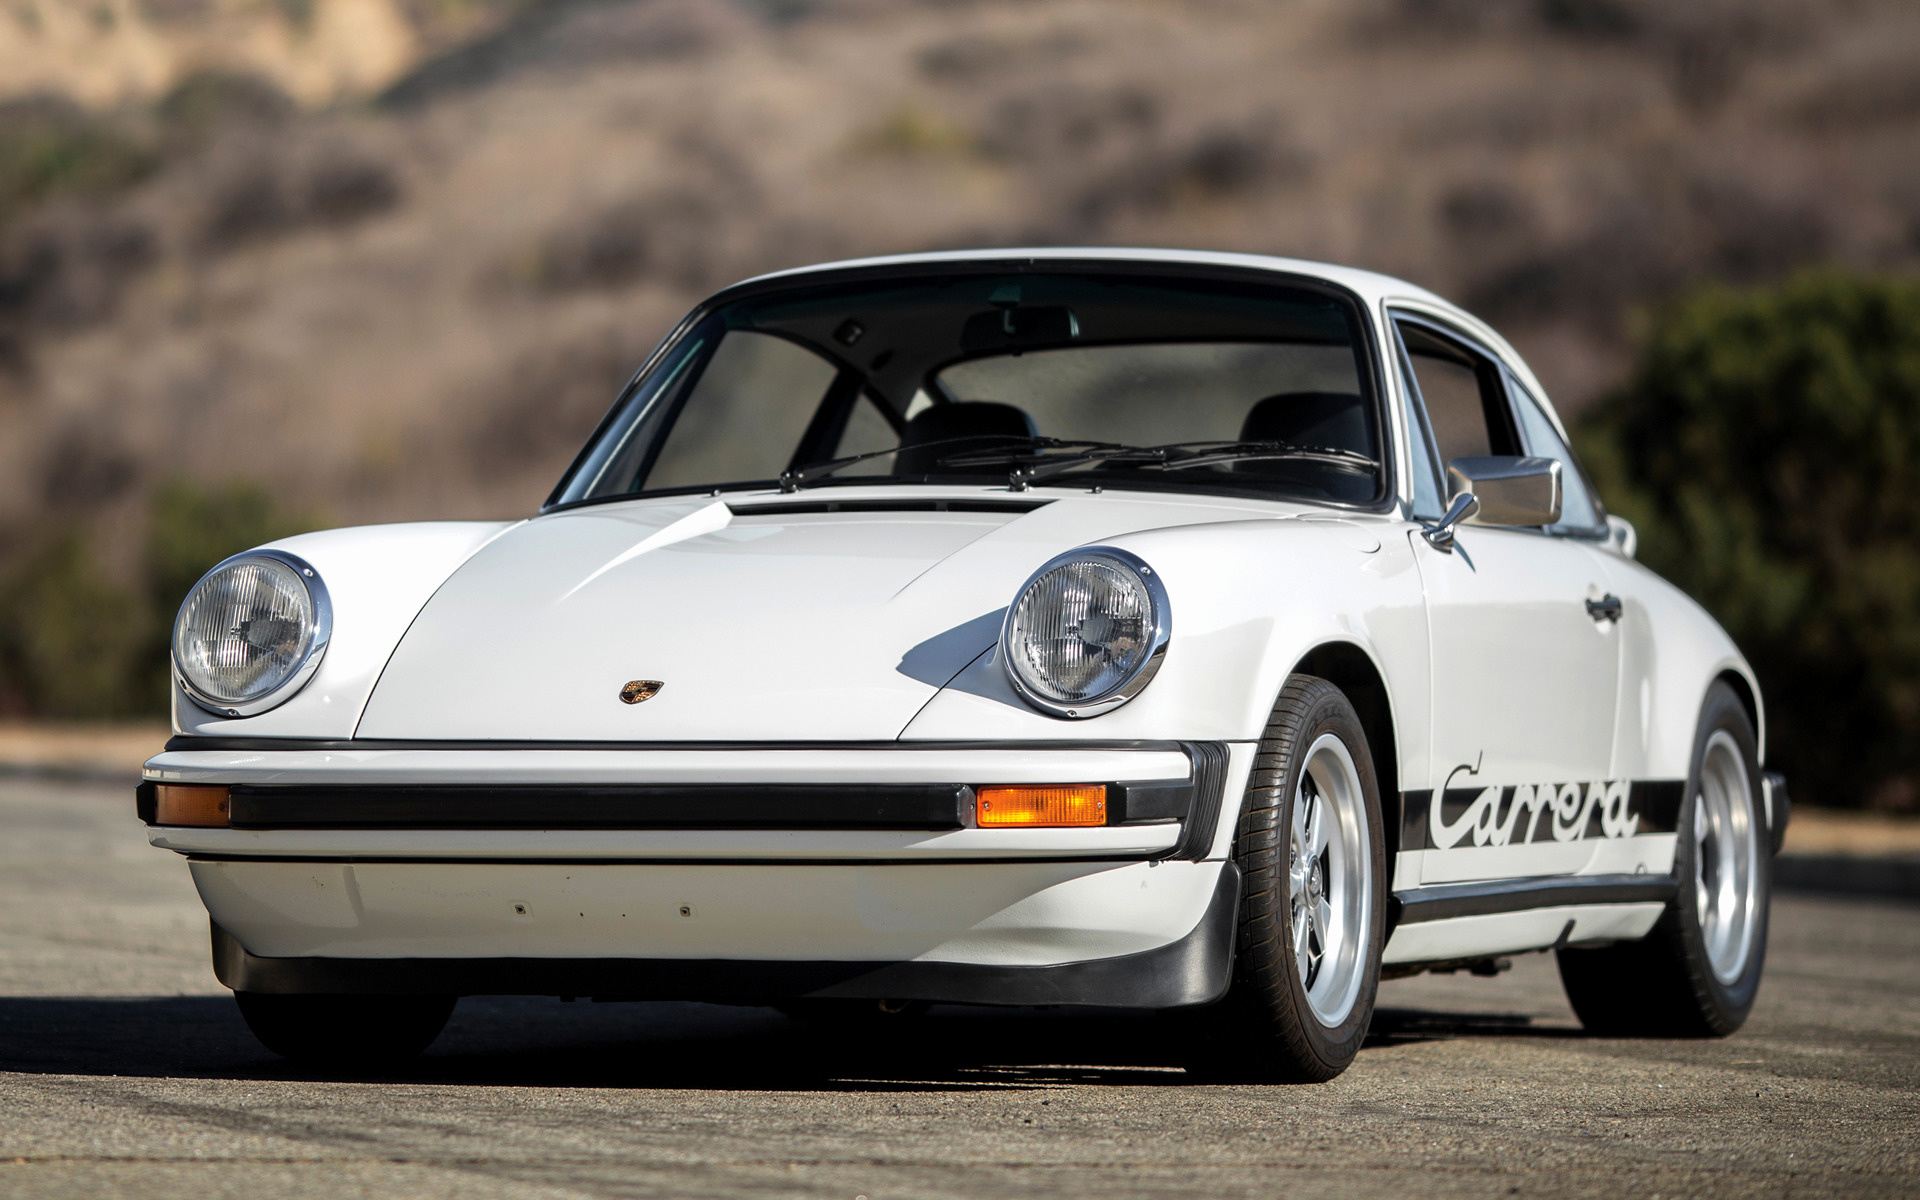 Porsche 911 Carrera With Ducktail 1974 Wallpapers And Hd